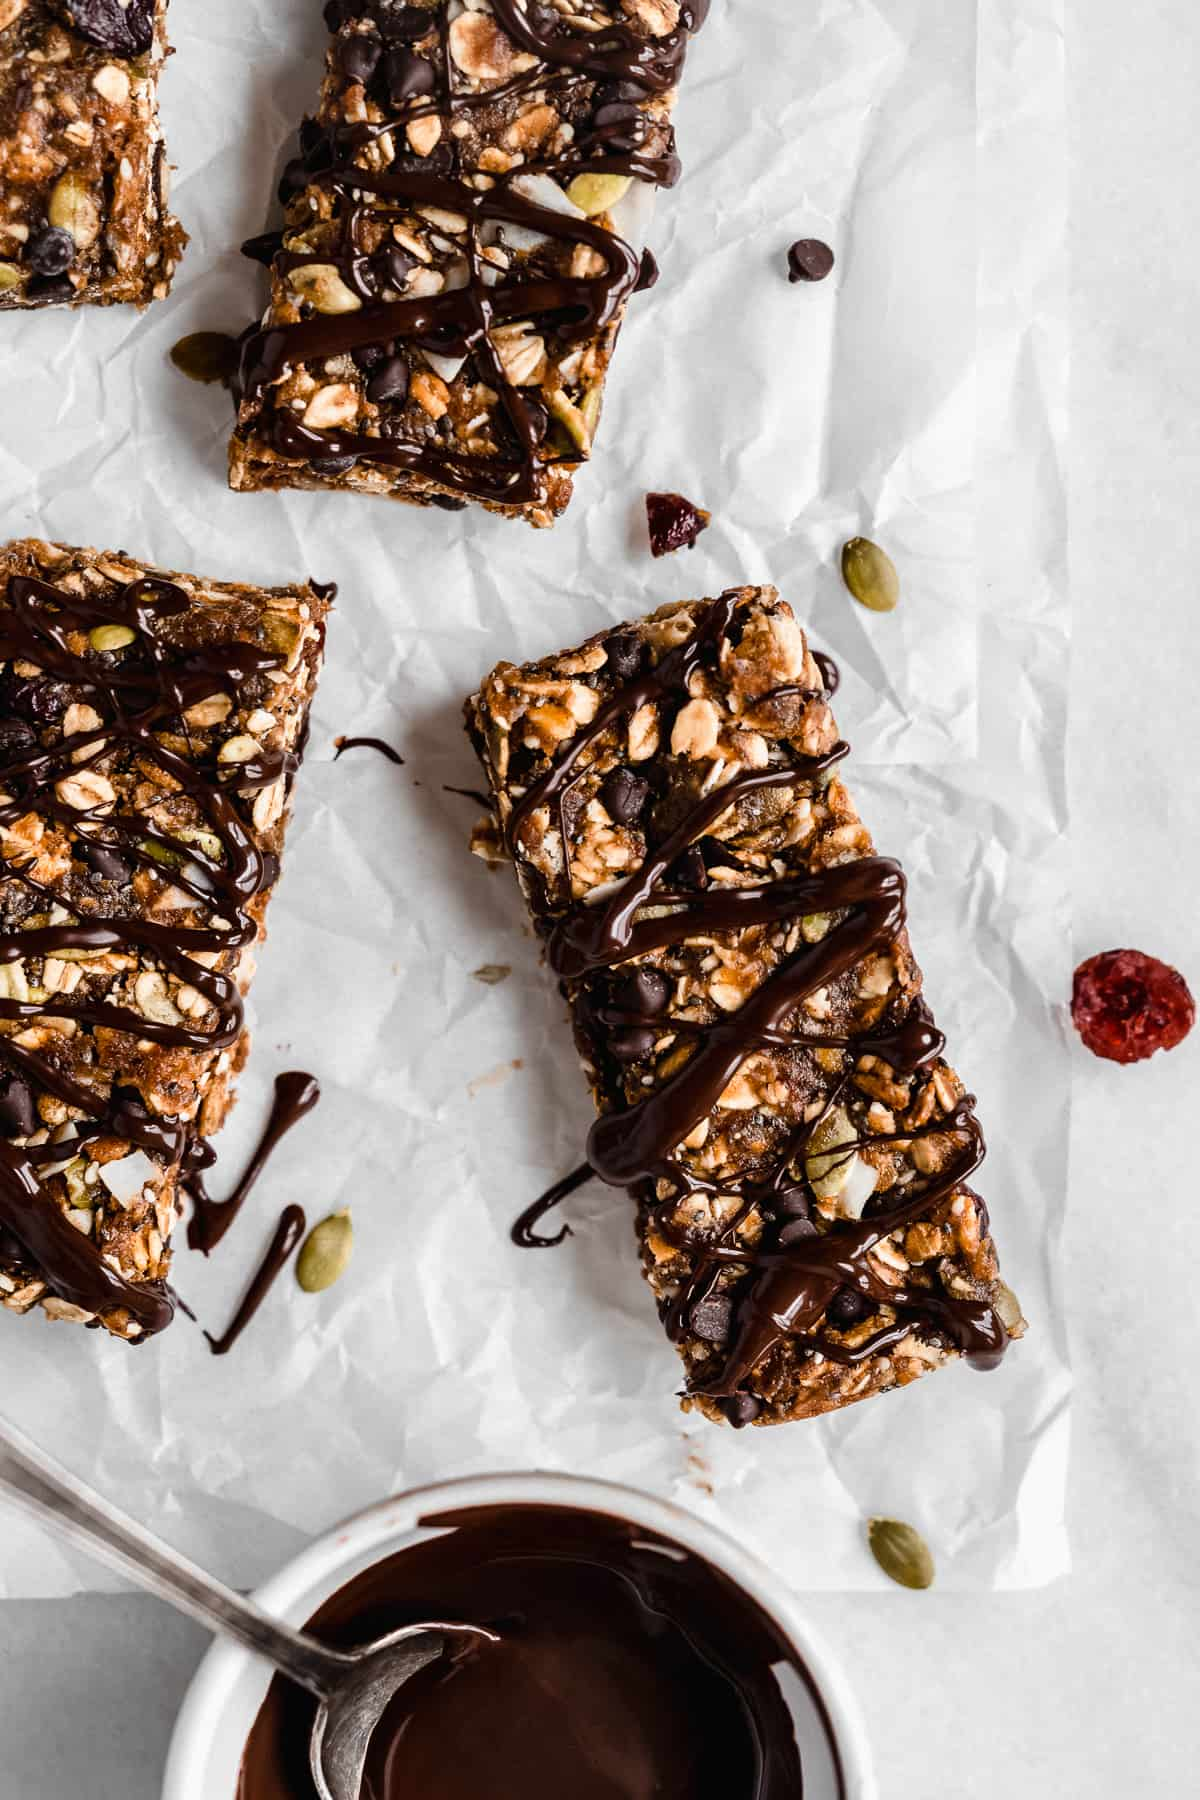 Overhead photo of several Nut-free Chocolate Granola Bars sitting on white parchment paper.  A white bowl of melted chocolate with a spoon sits nearby and has drizzled chocolate on top of the bars.